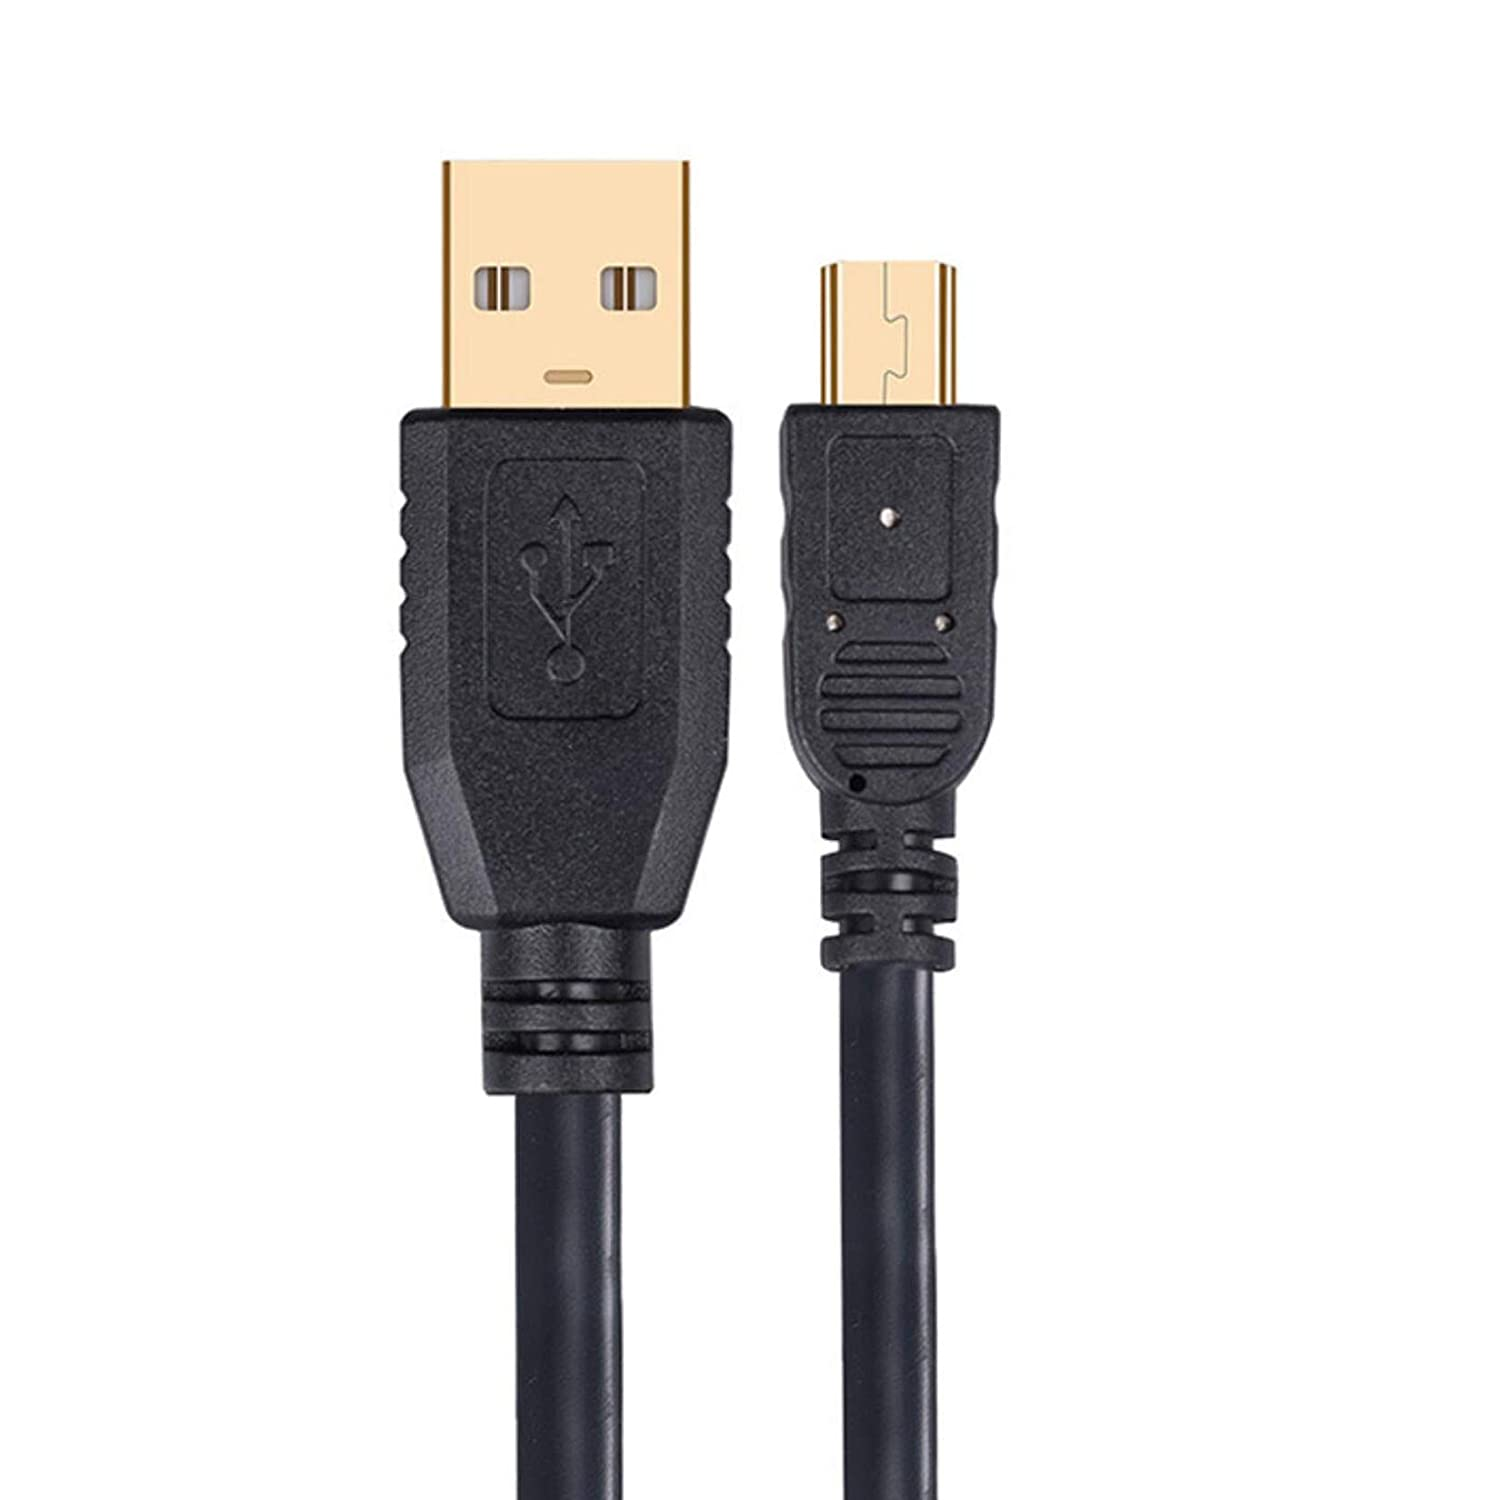 Mini USB Cable USB 2.0 A to Mini-B 5 Pin BolAAzul Mini USB Data Sync /& Charger Cable W//Ferrite Core etc. USB PC Charger Charging Cable Cord for TI-84 Plus CE Graphing Calculator MP3//MP4//GPS